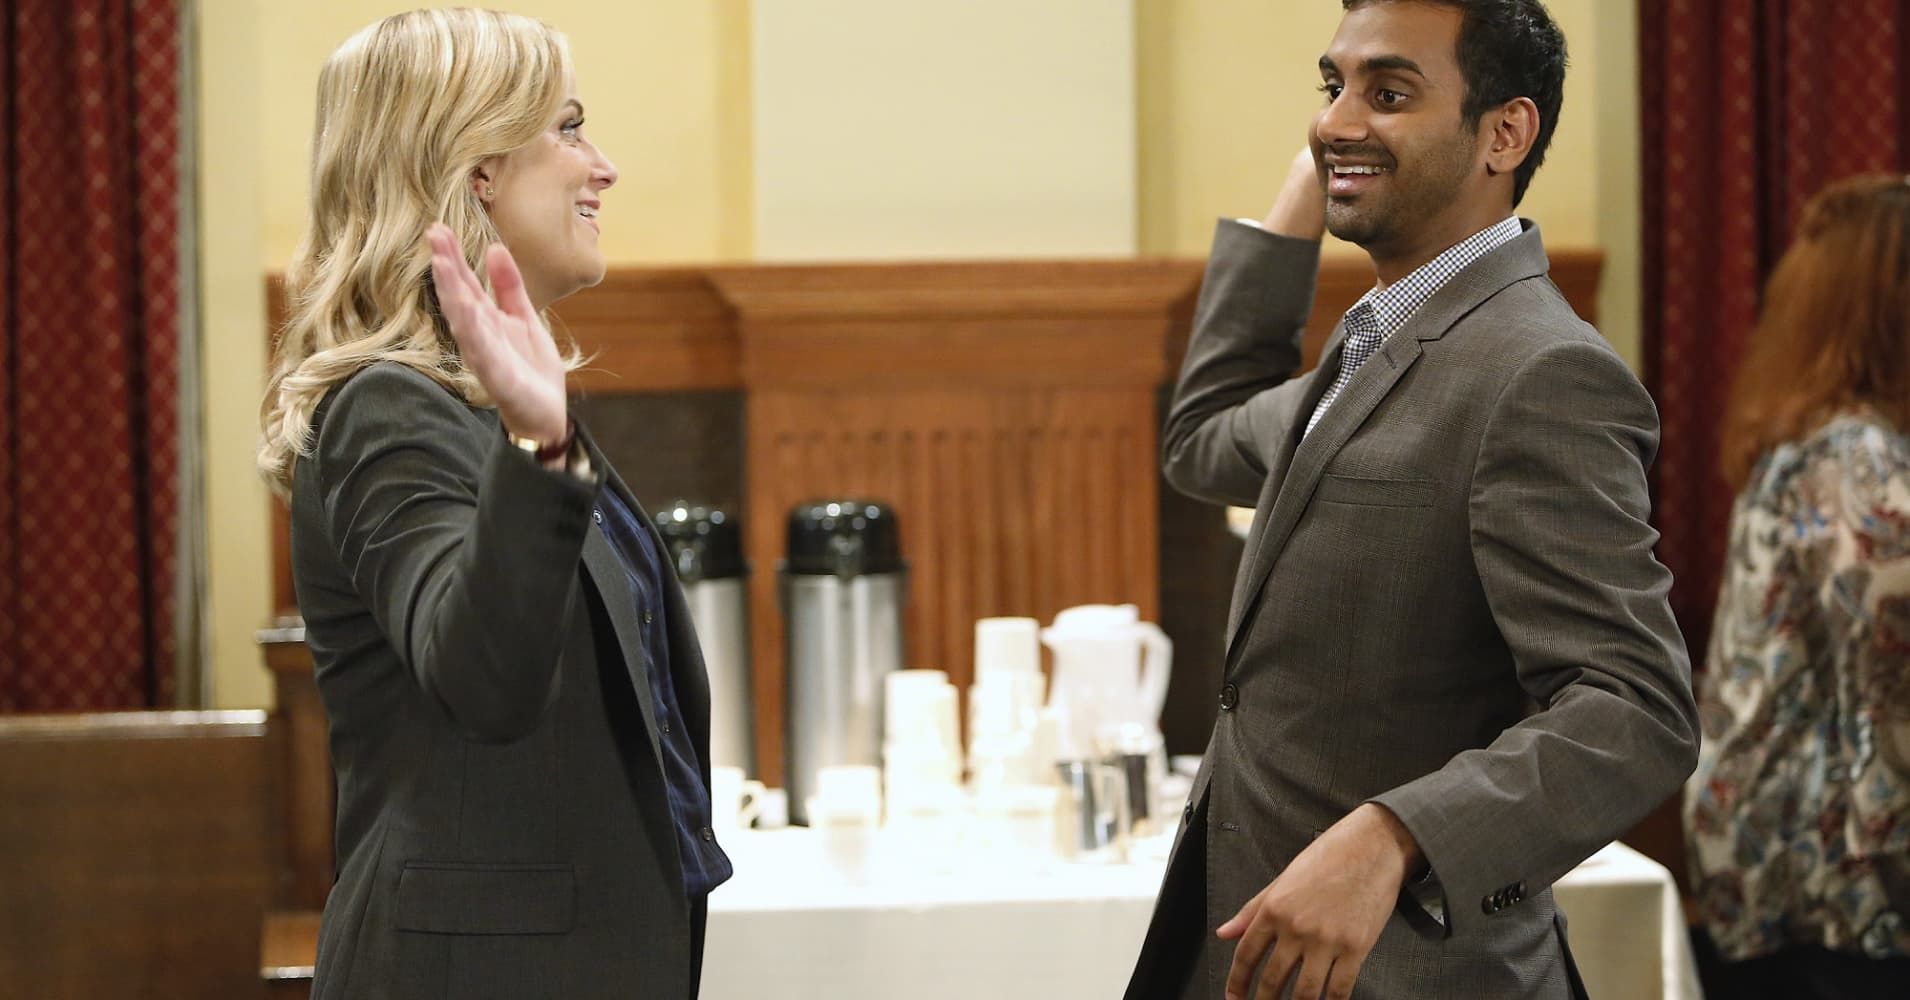 Amy Poehler as Leslie Knope and Aziz Ansari as Tom Haverford on Episode 711 of Parks and Recreation.